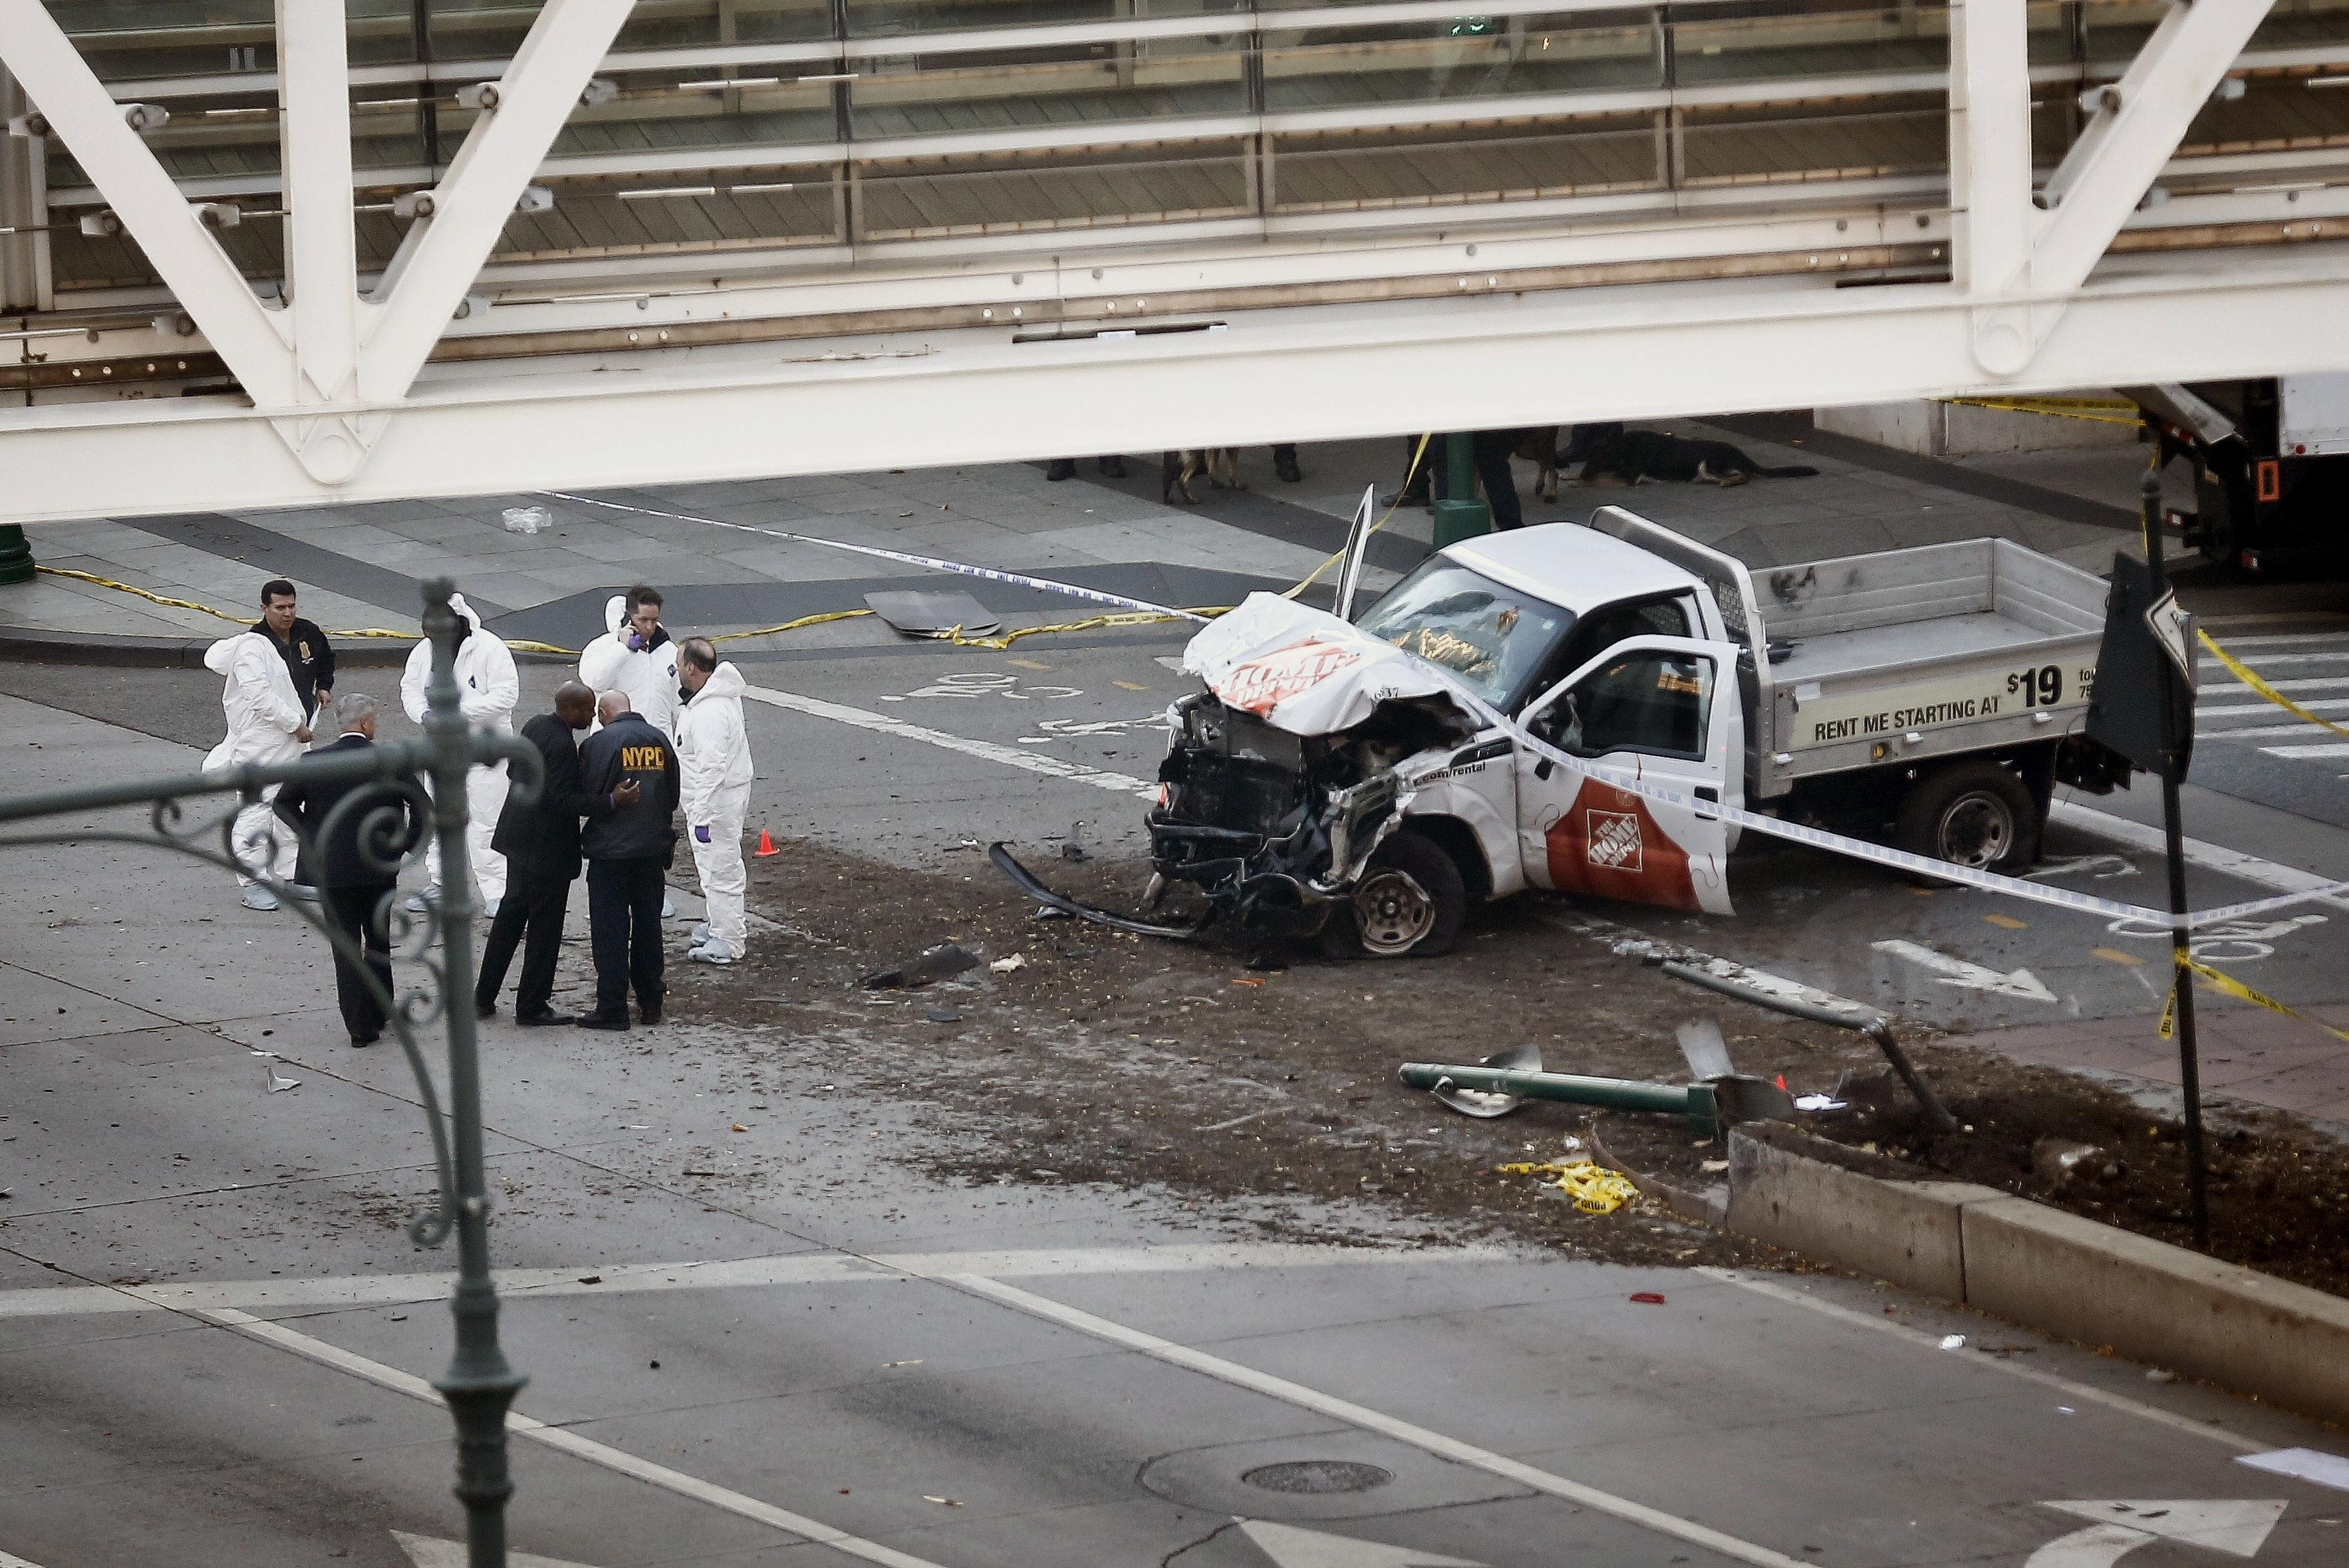 The truck used to carry out the attack (Picture: Getty)